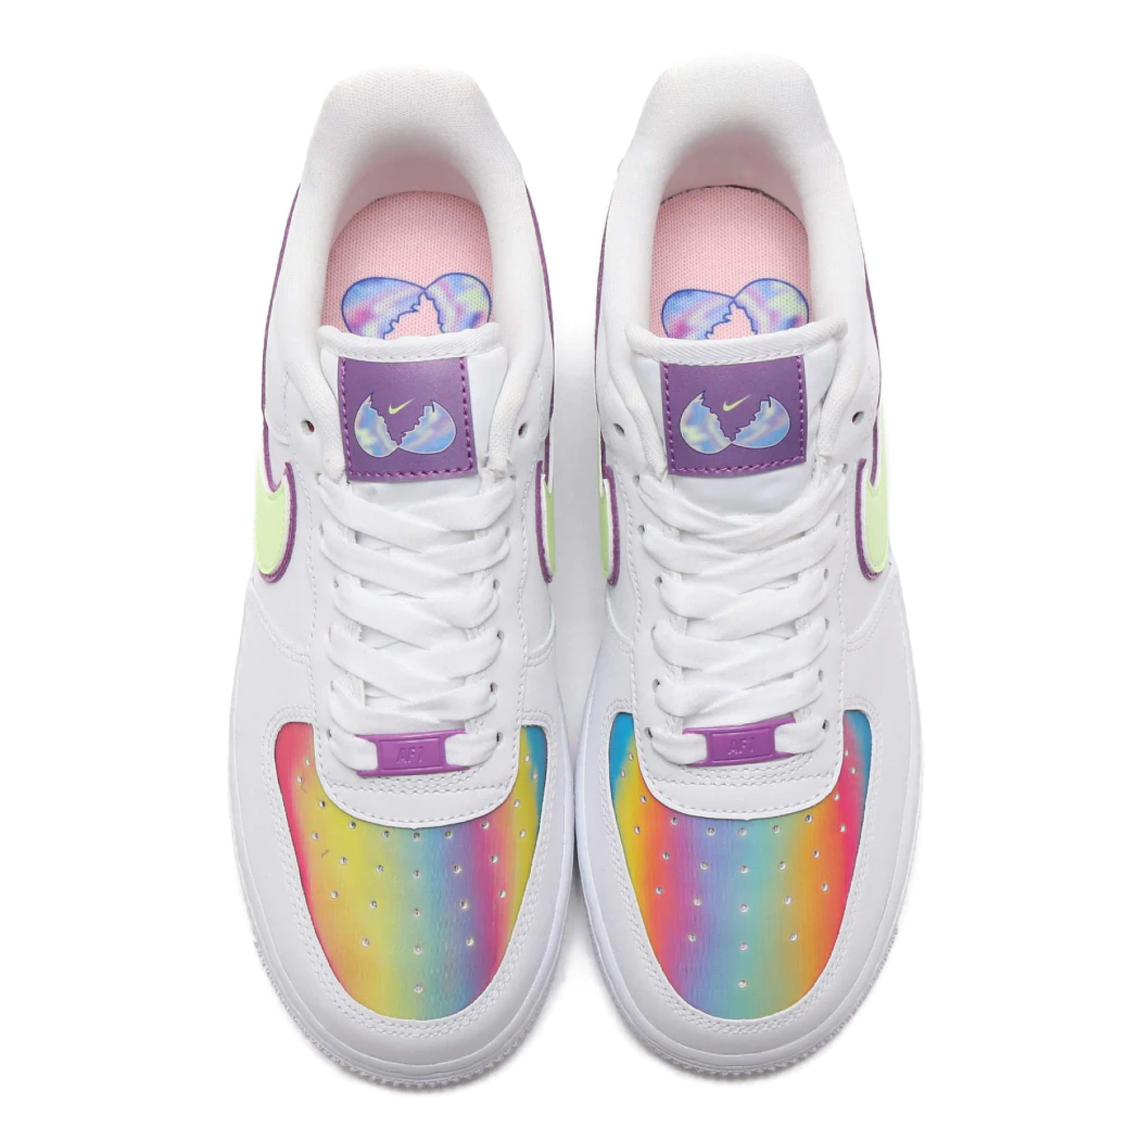 Nike Air Force 1 Low Easter 2020 CW0367 100 Crumpe